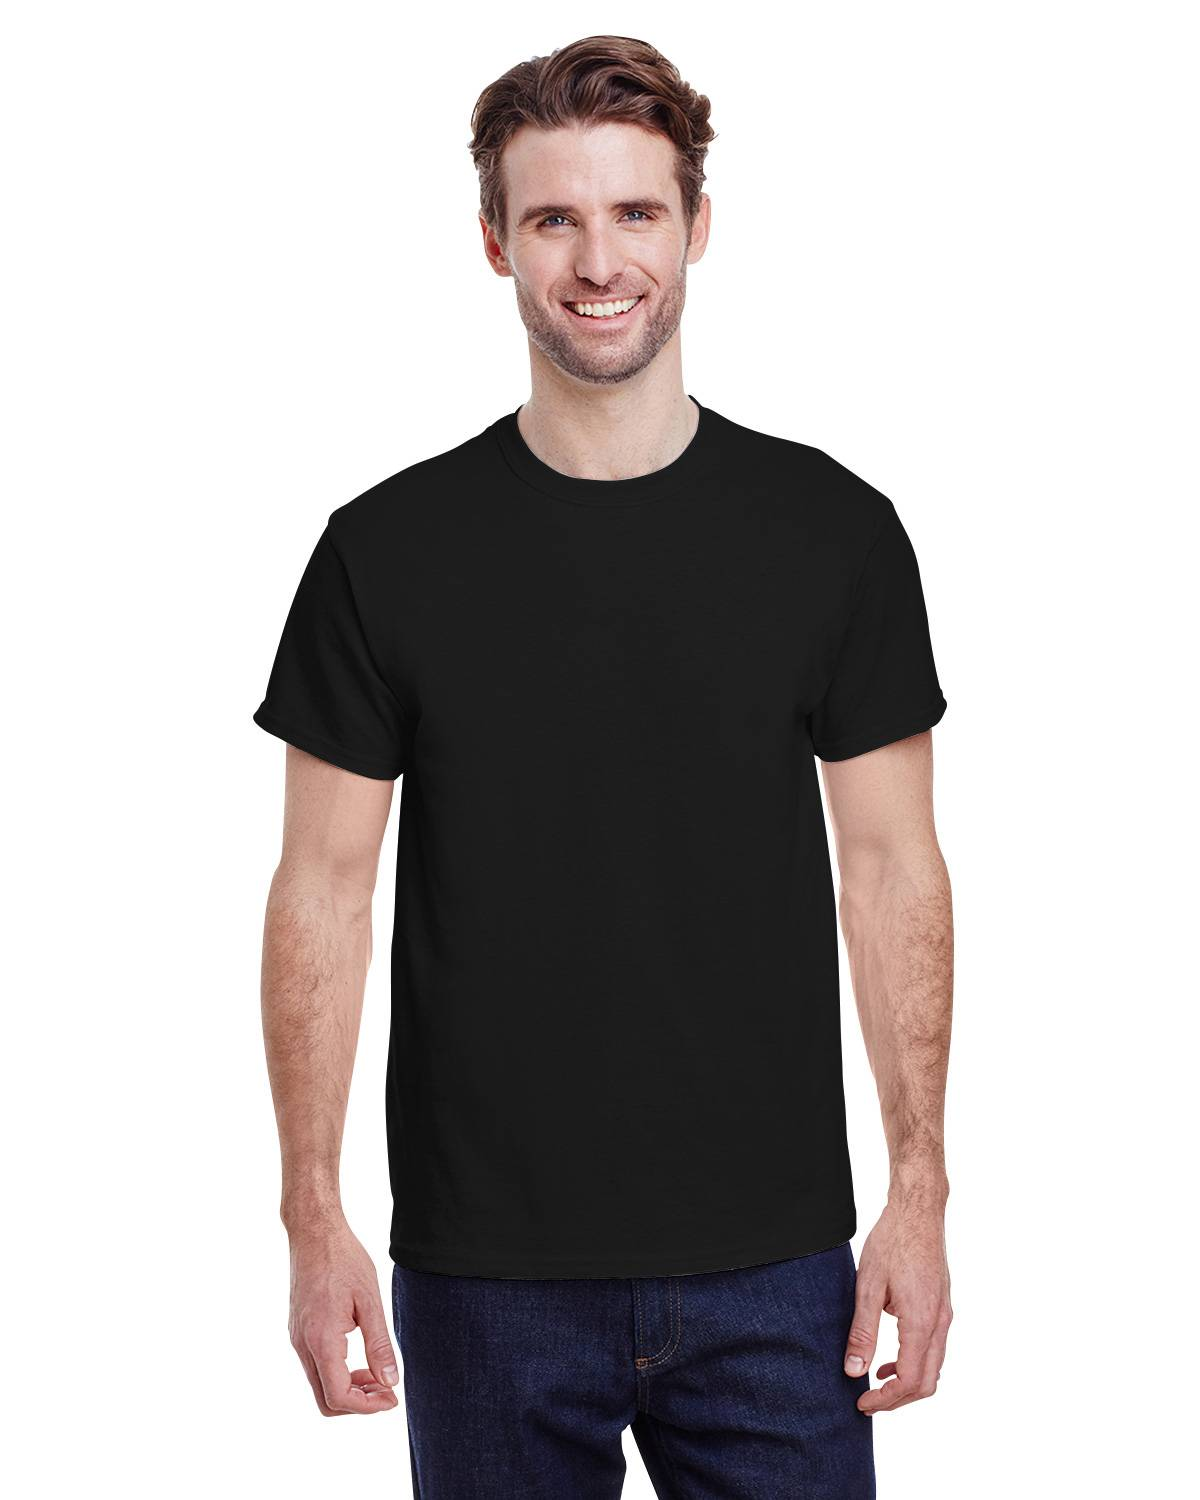 Black t shirt model template -  Black T Shirt On Model